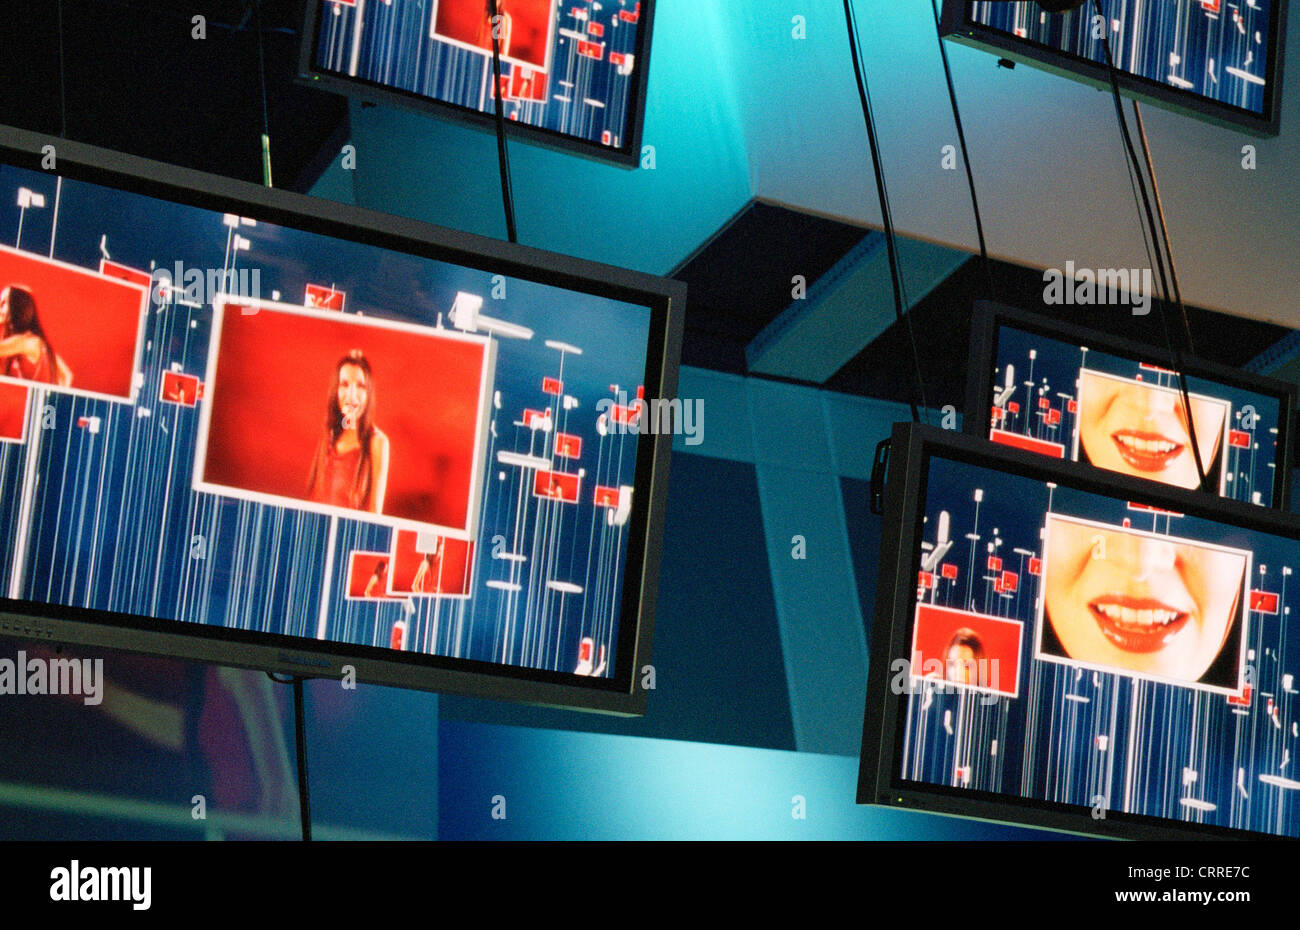 Panasonic shows modern plasma screens at IFA - Stock Image